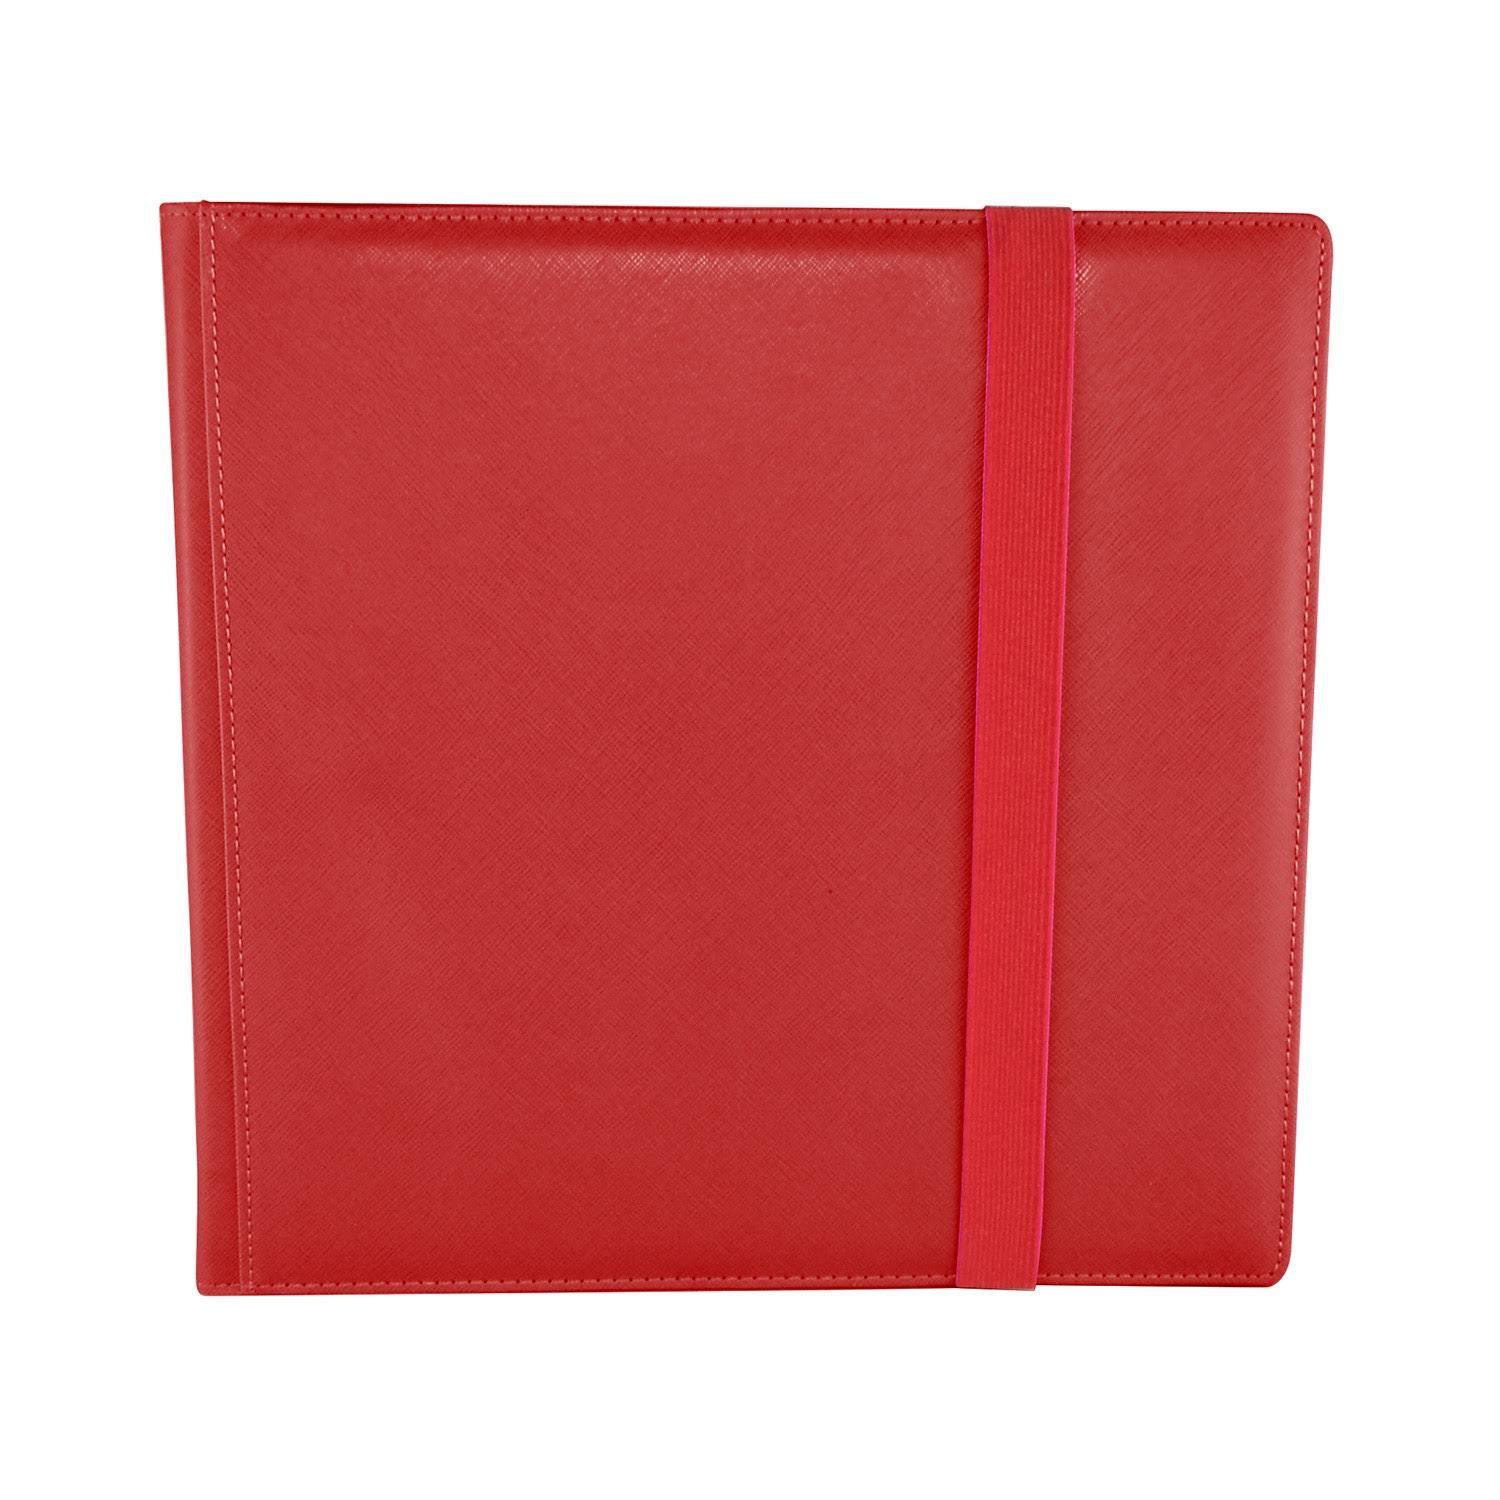 Dex Protection Dex Binder 12 - Red